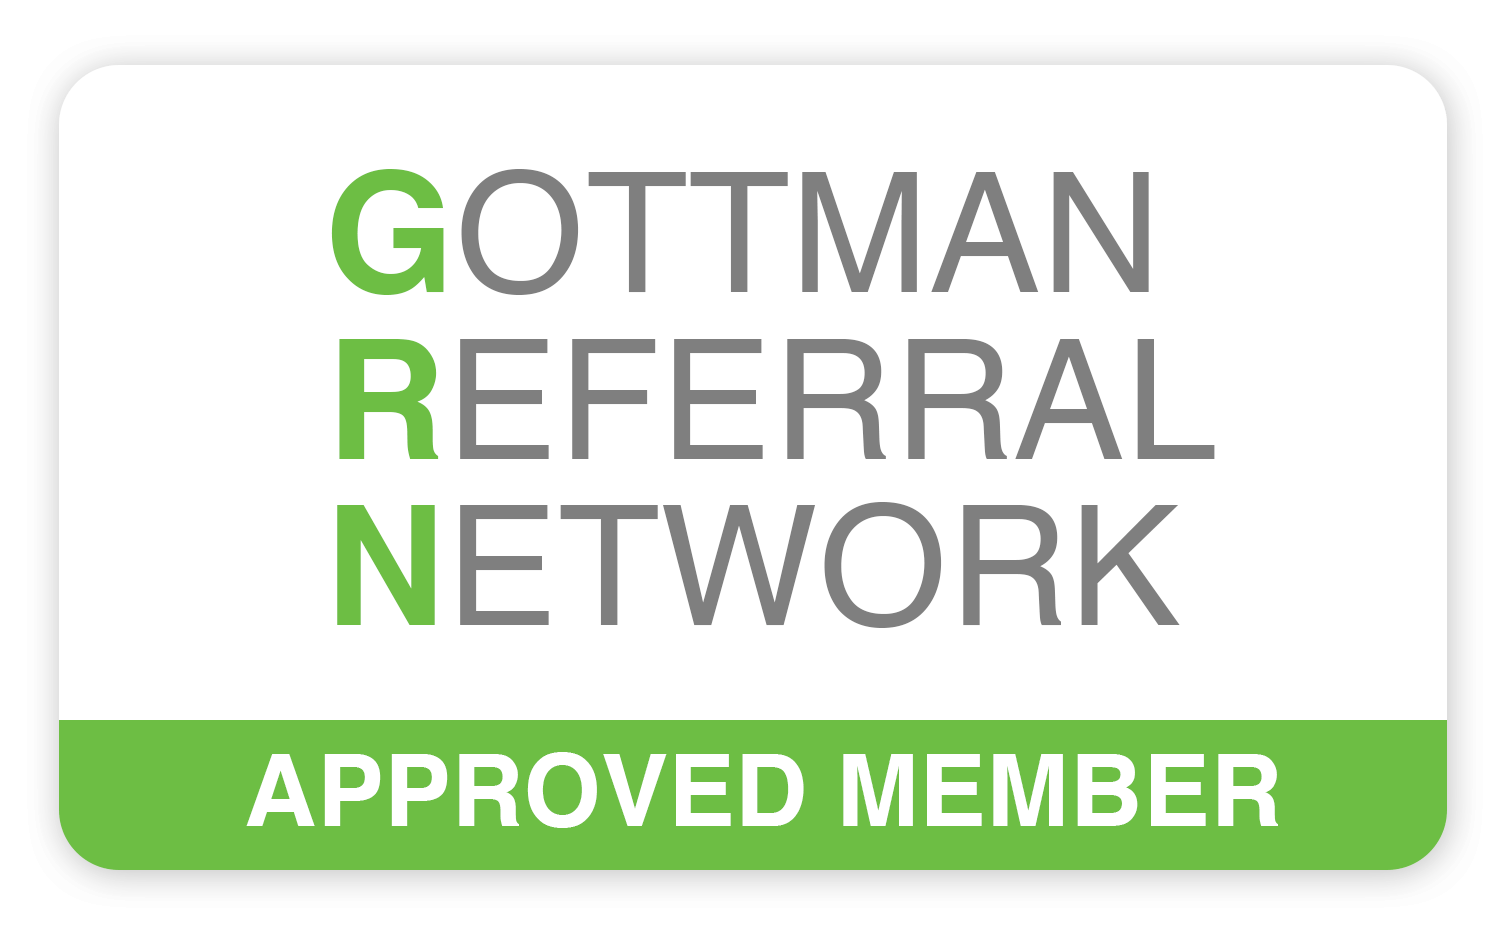 Kate McNulty's profile on the Gottman Referral Network